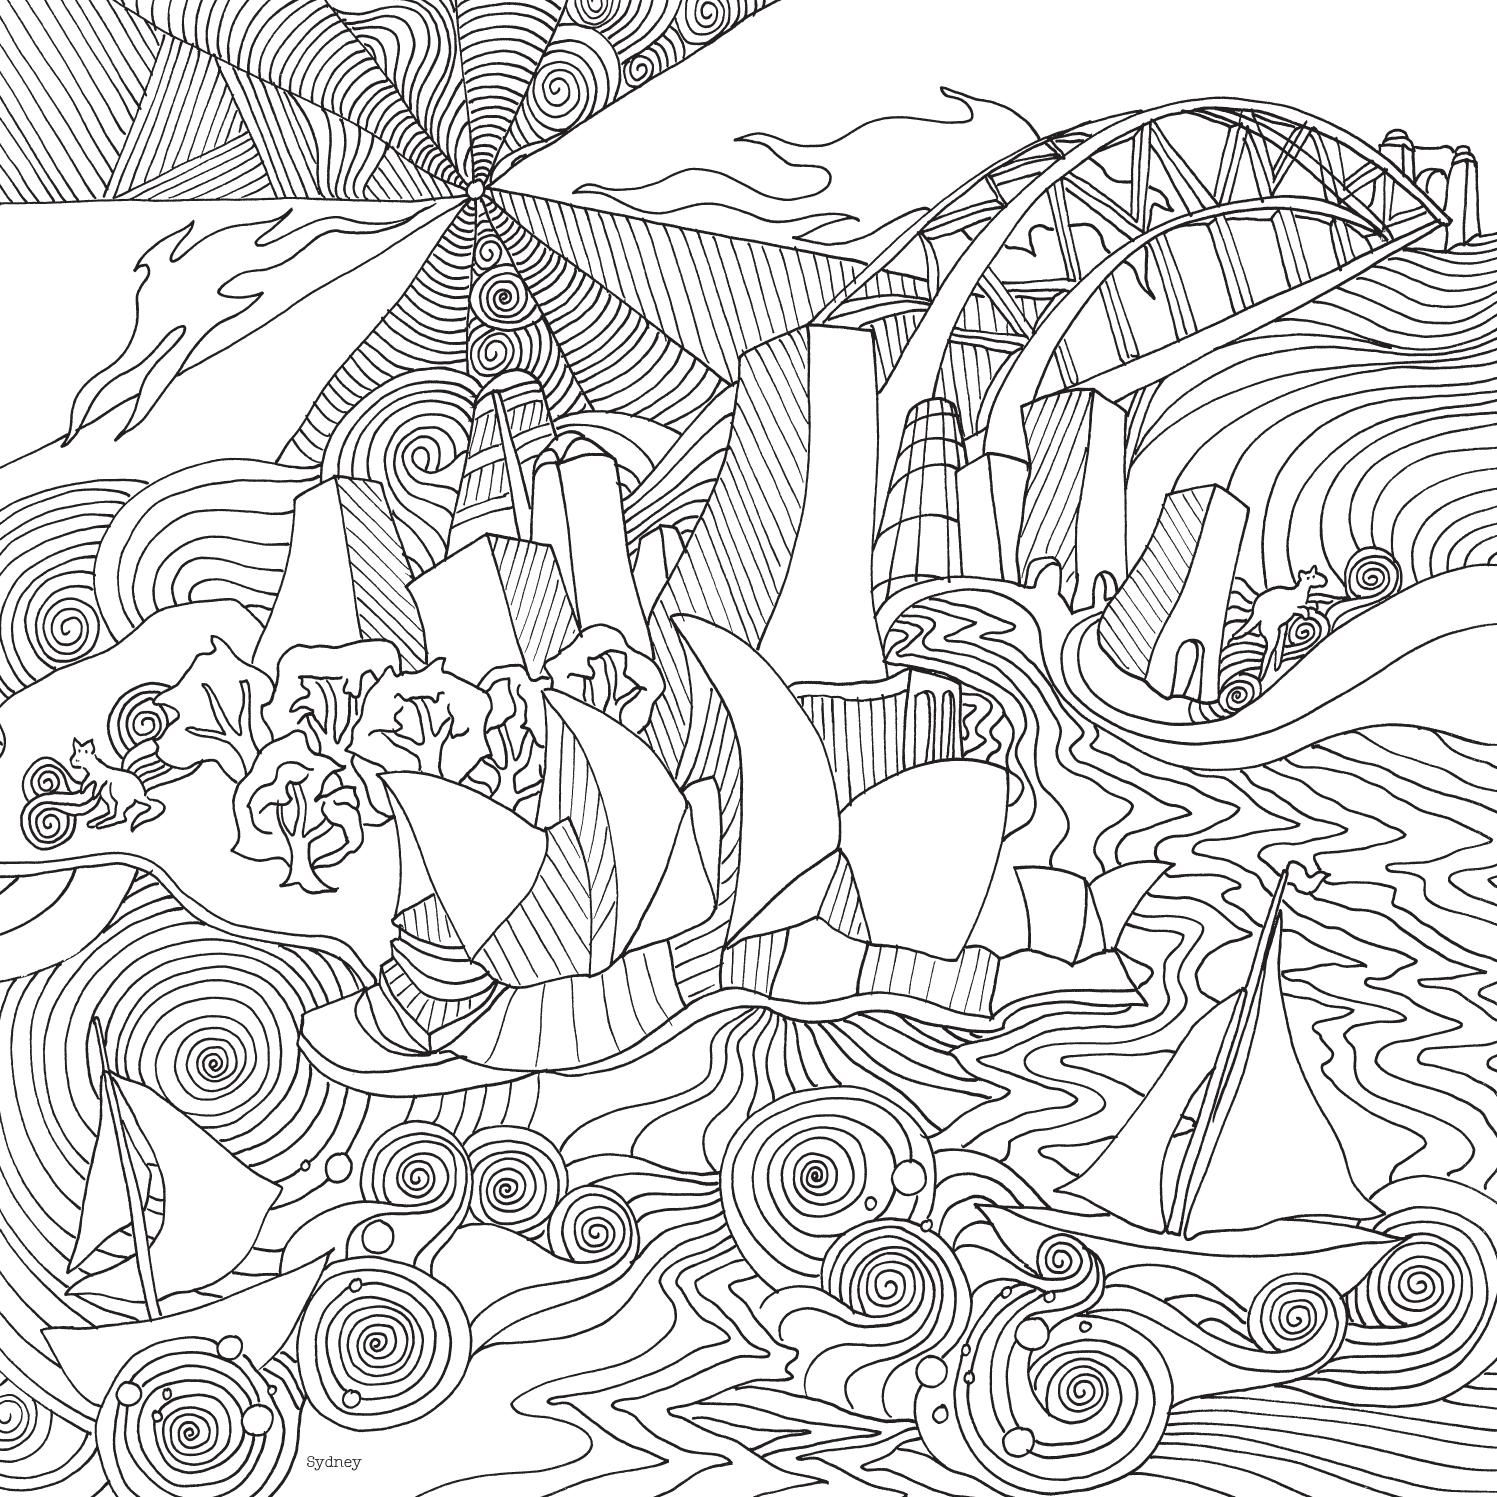 sydney the magical city is a brand new colouring book by award